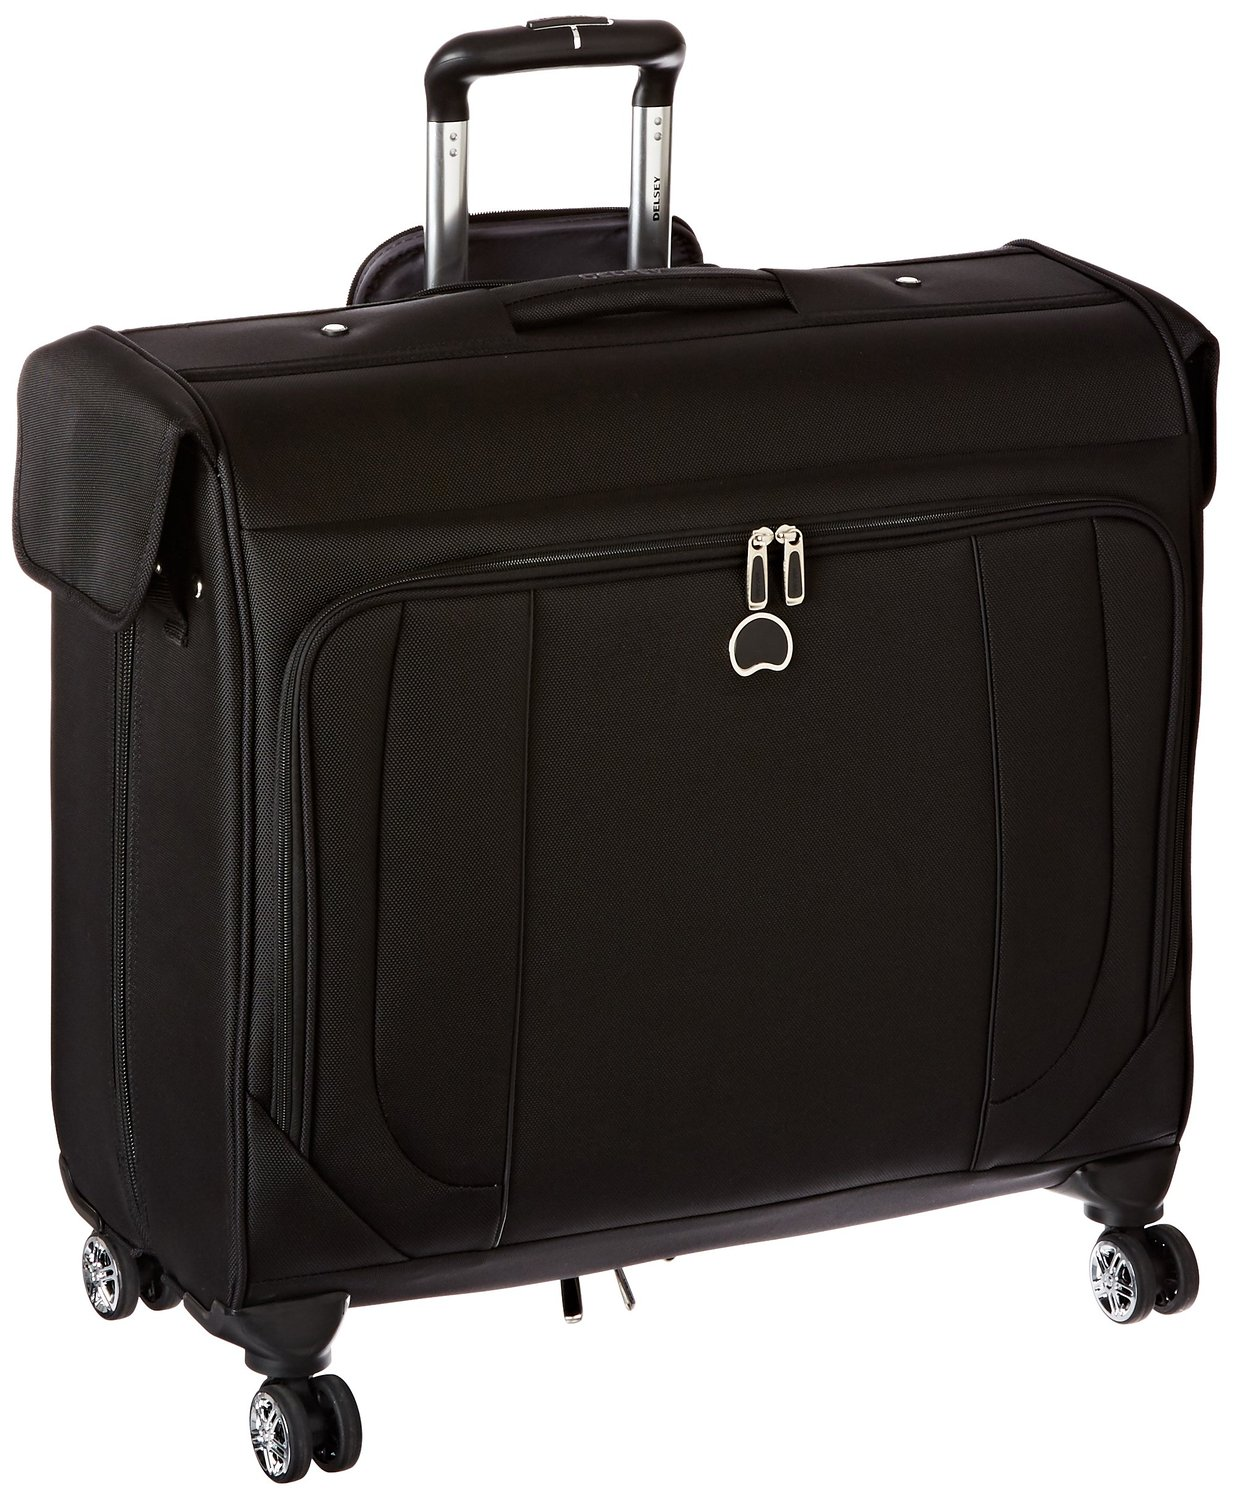 "Reviewing Delsey Helium 45"" Deluxe Garment Bag"